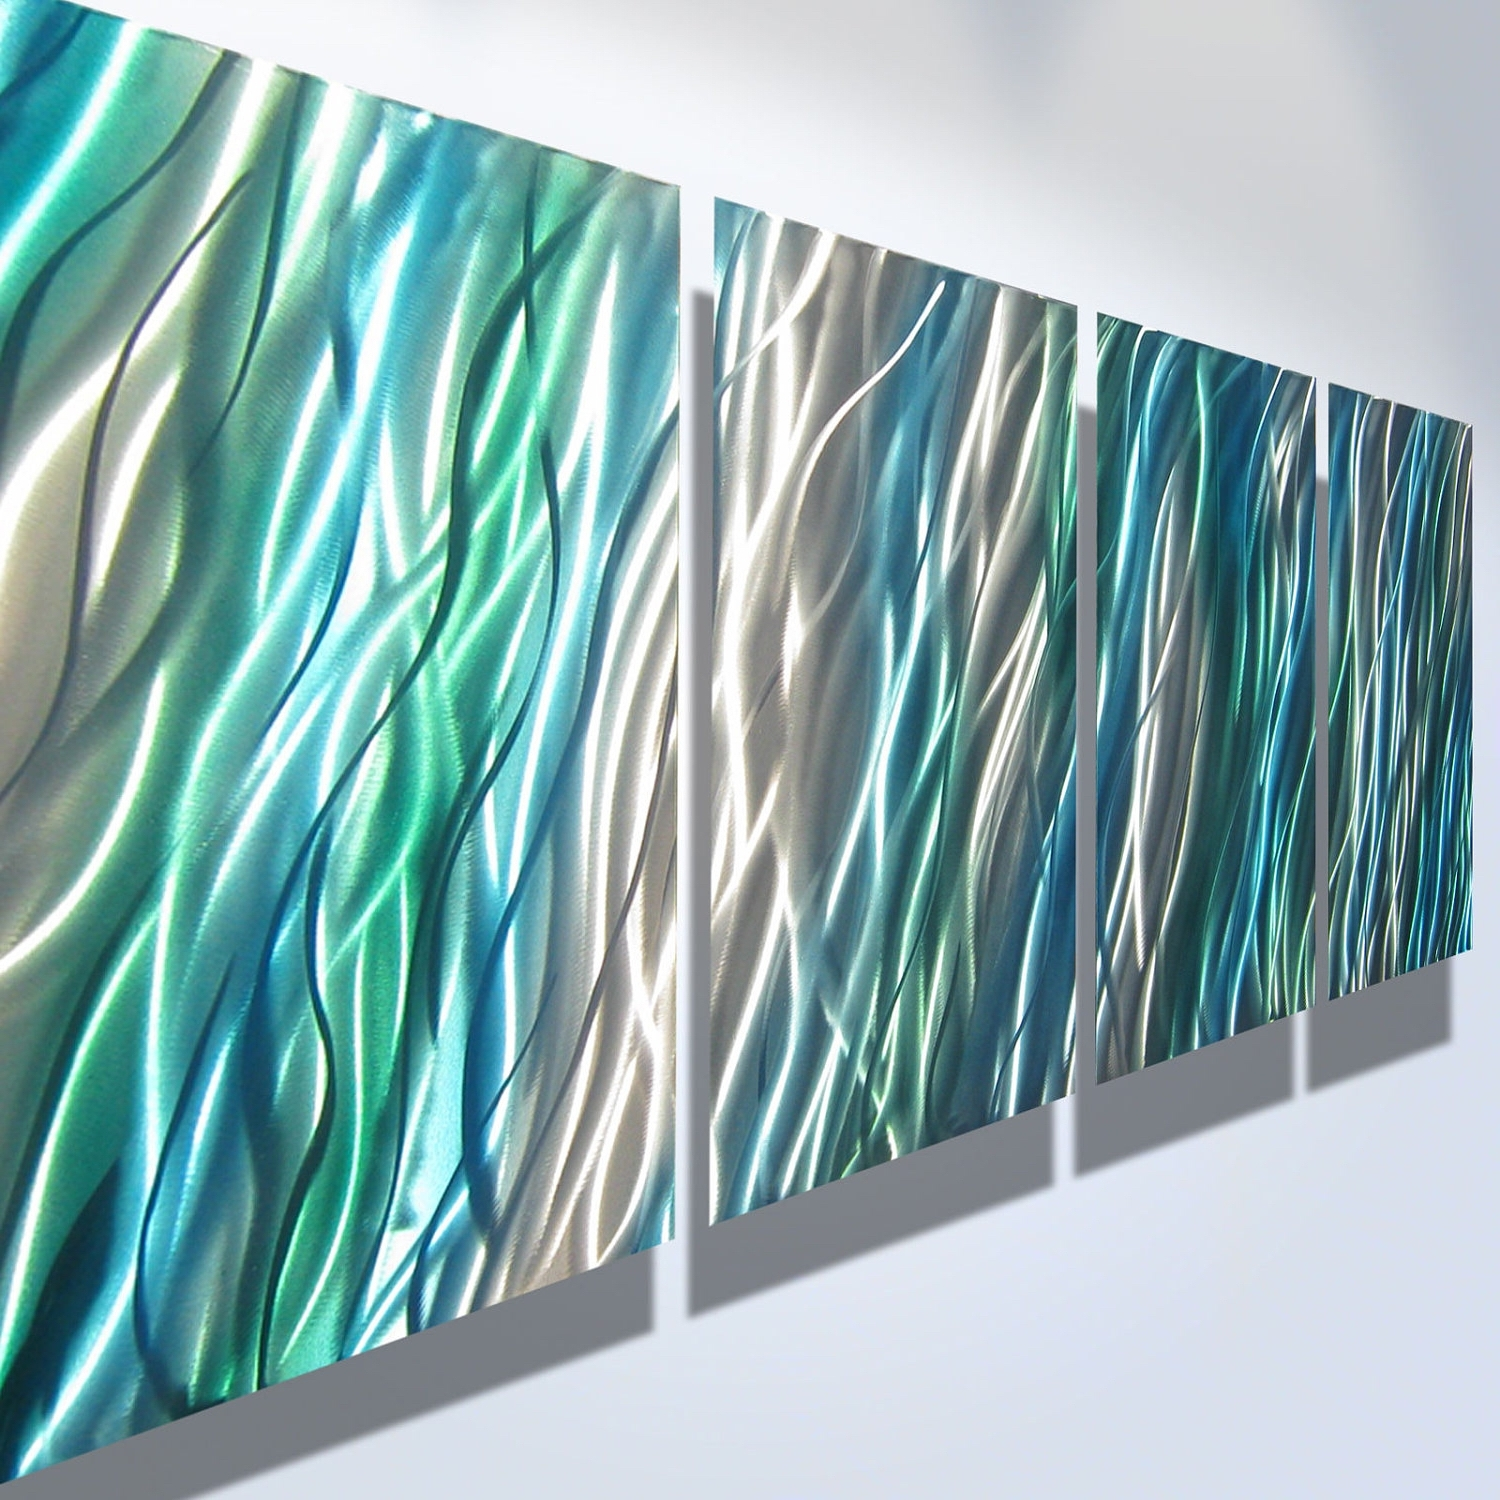 Turquoise Metal Wall Art In Most Popular Metal Wall Art Decor Abstract Contemporary Modern Sculpture (Gallery 2 of 15)